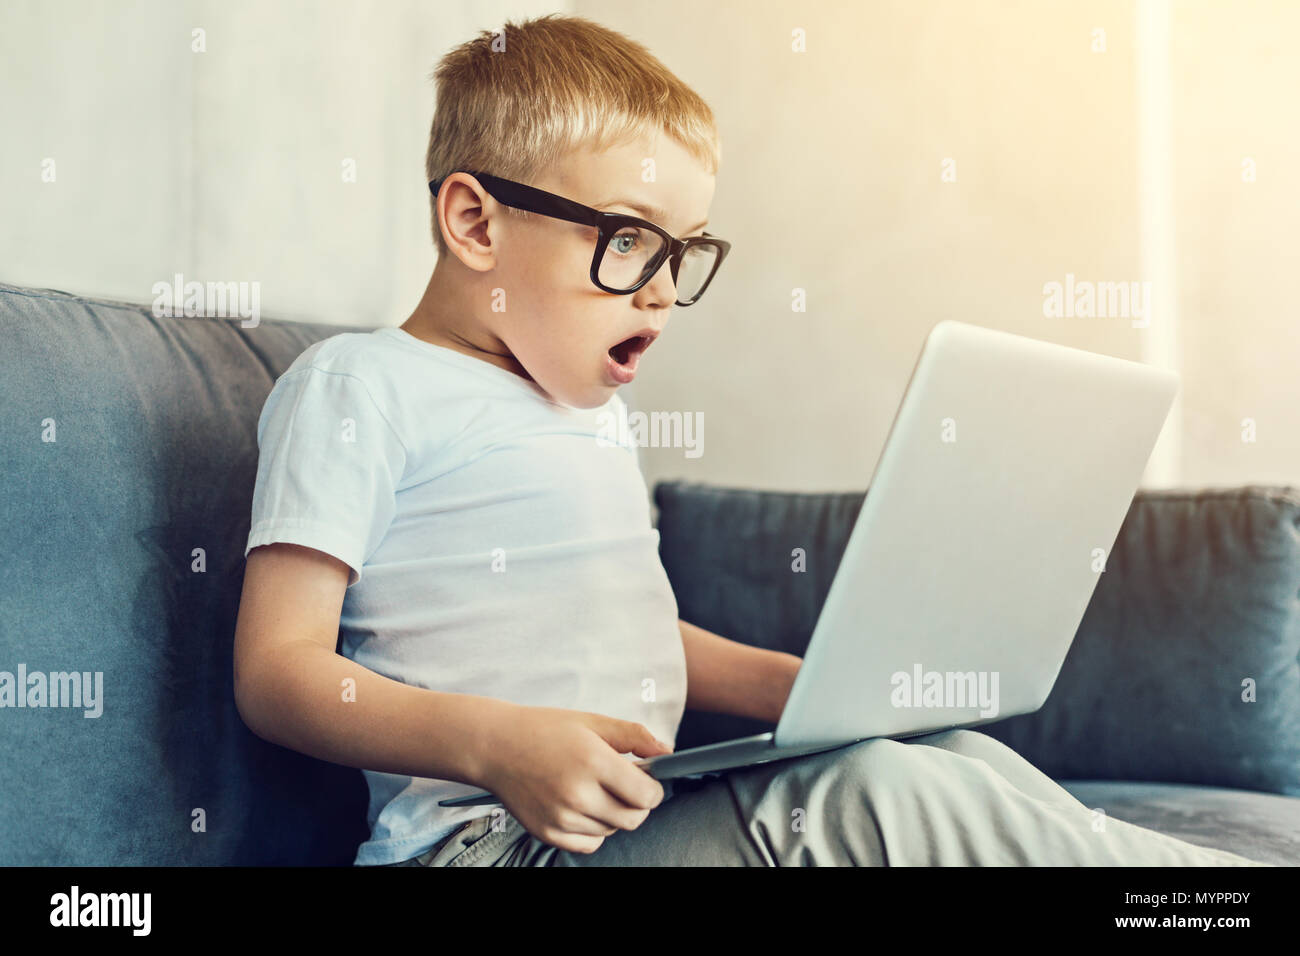 Astonished boy in glasses holding a laptop - Stock Image